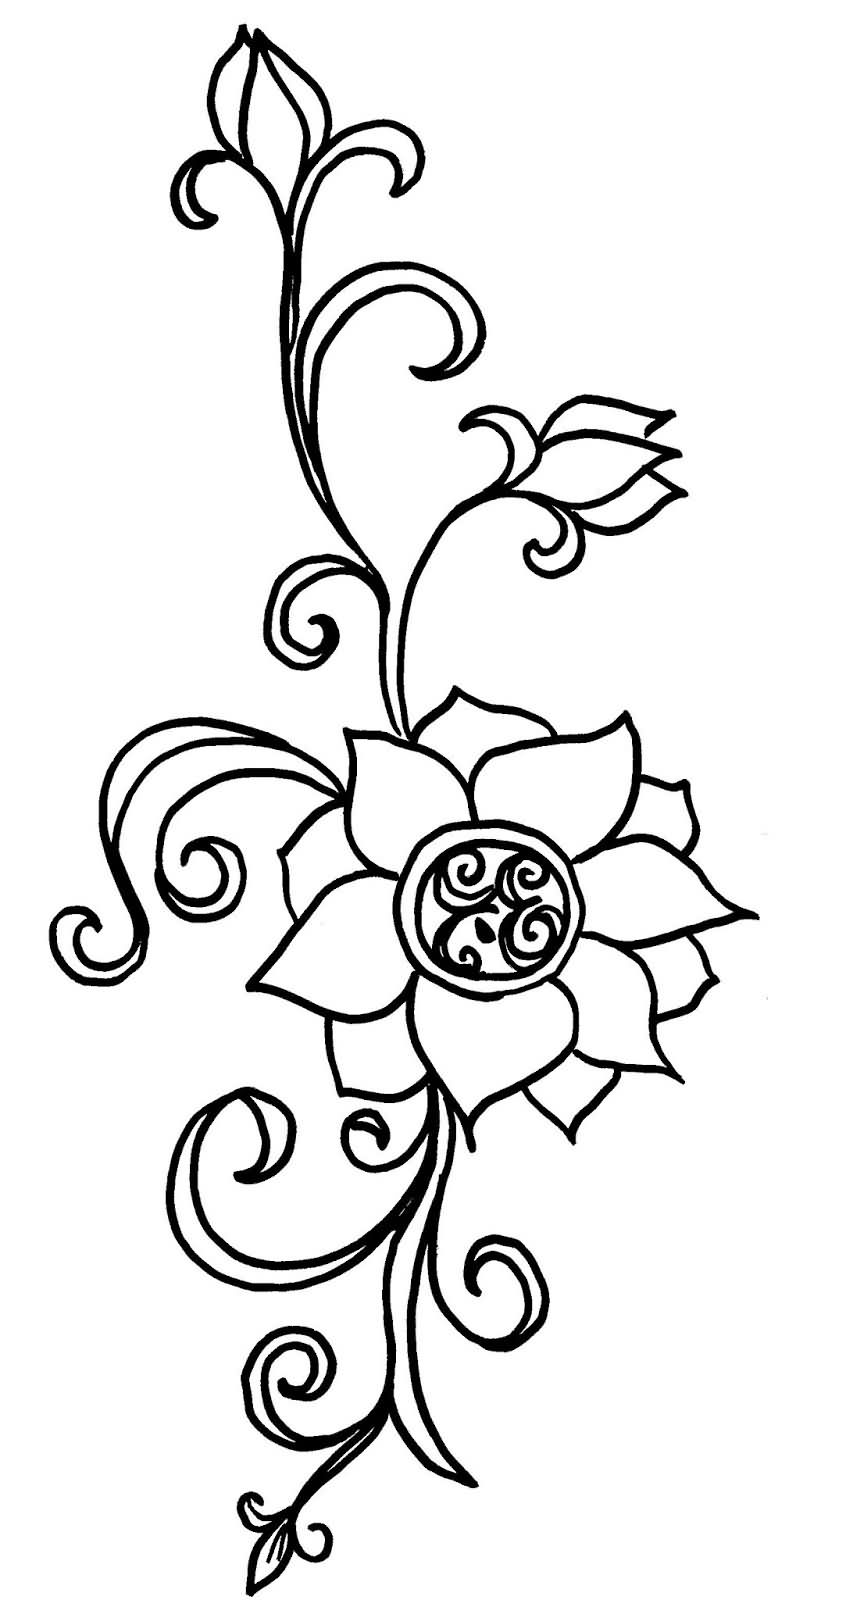 Awesome black lotus flowers tattoo stencil izmirmasajfo